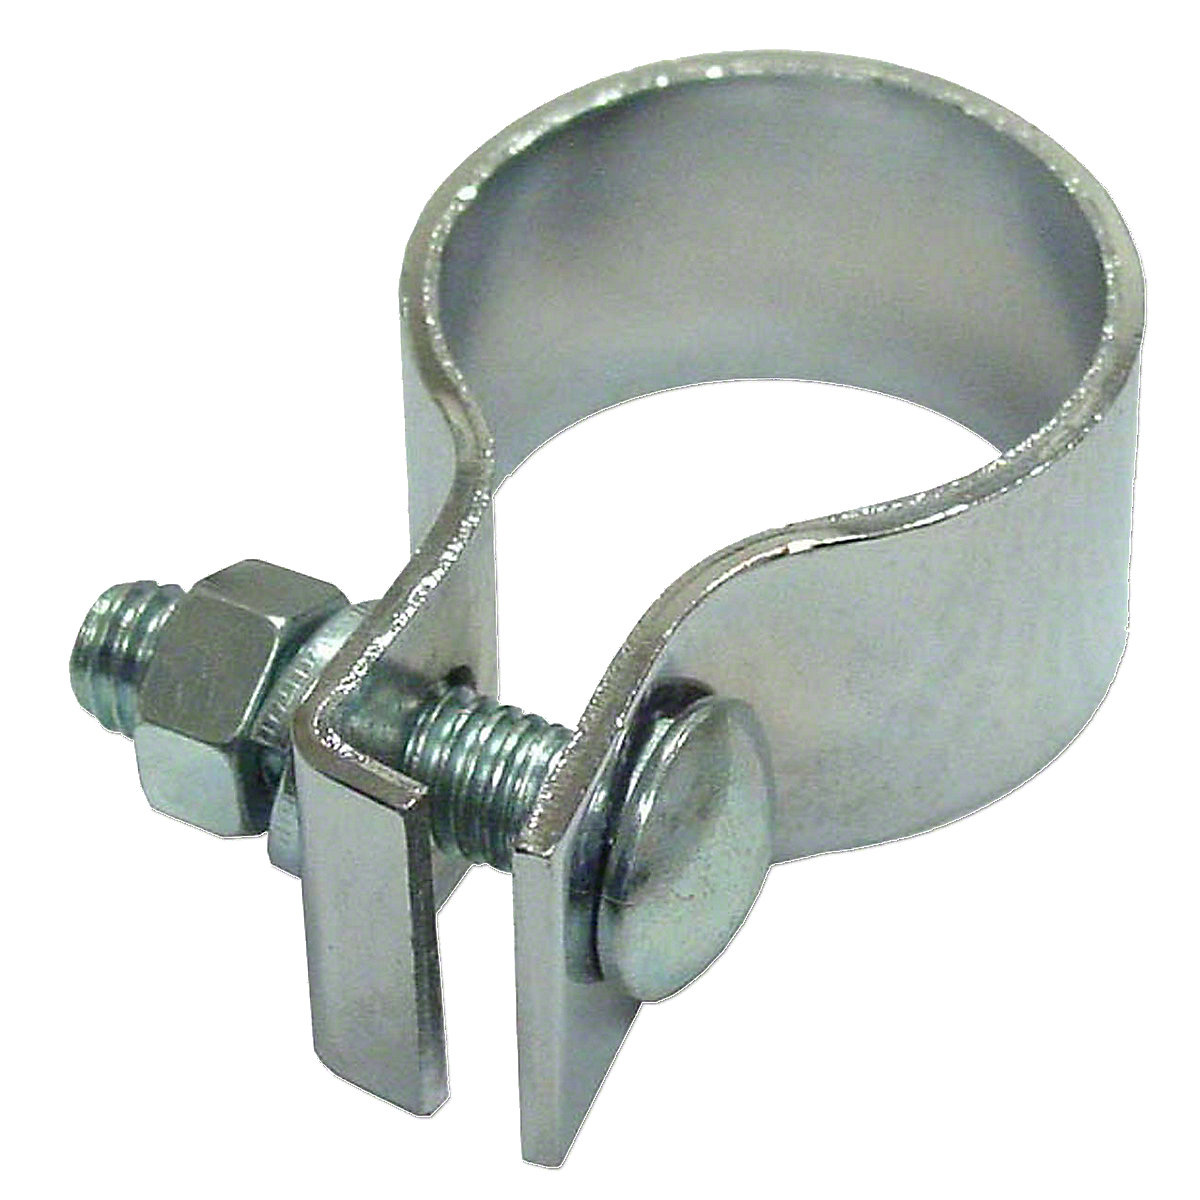 1.450 To 1.500 Chrome Muffler Clamp For Massey Harris And Massey Ferguson Tractors.